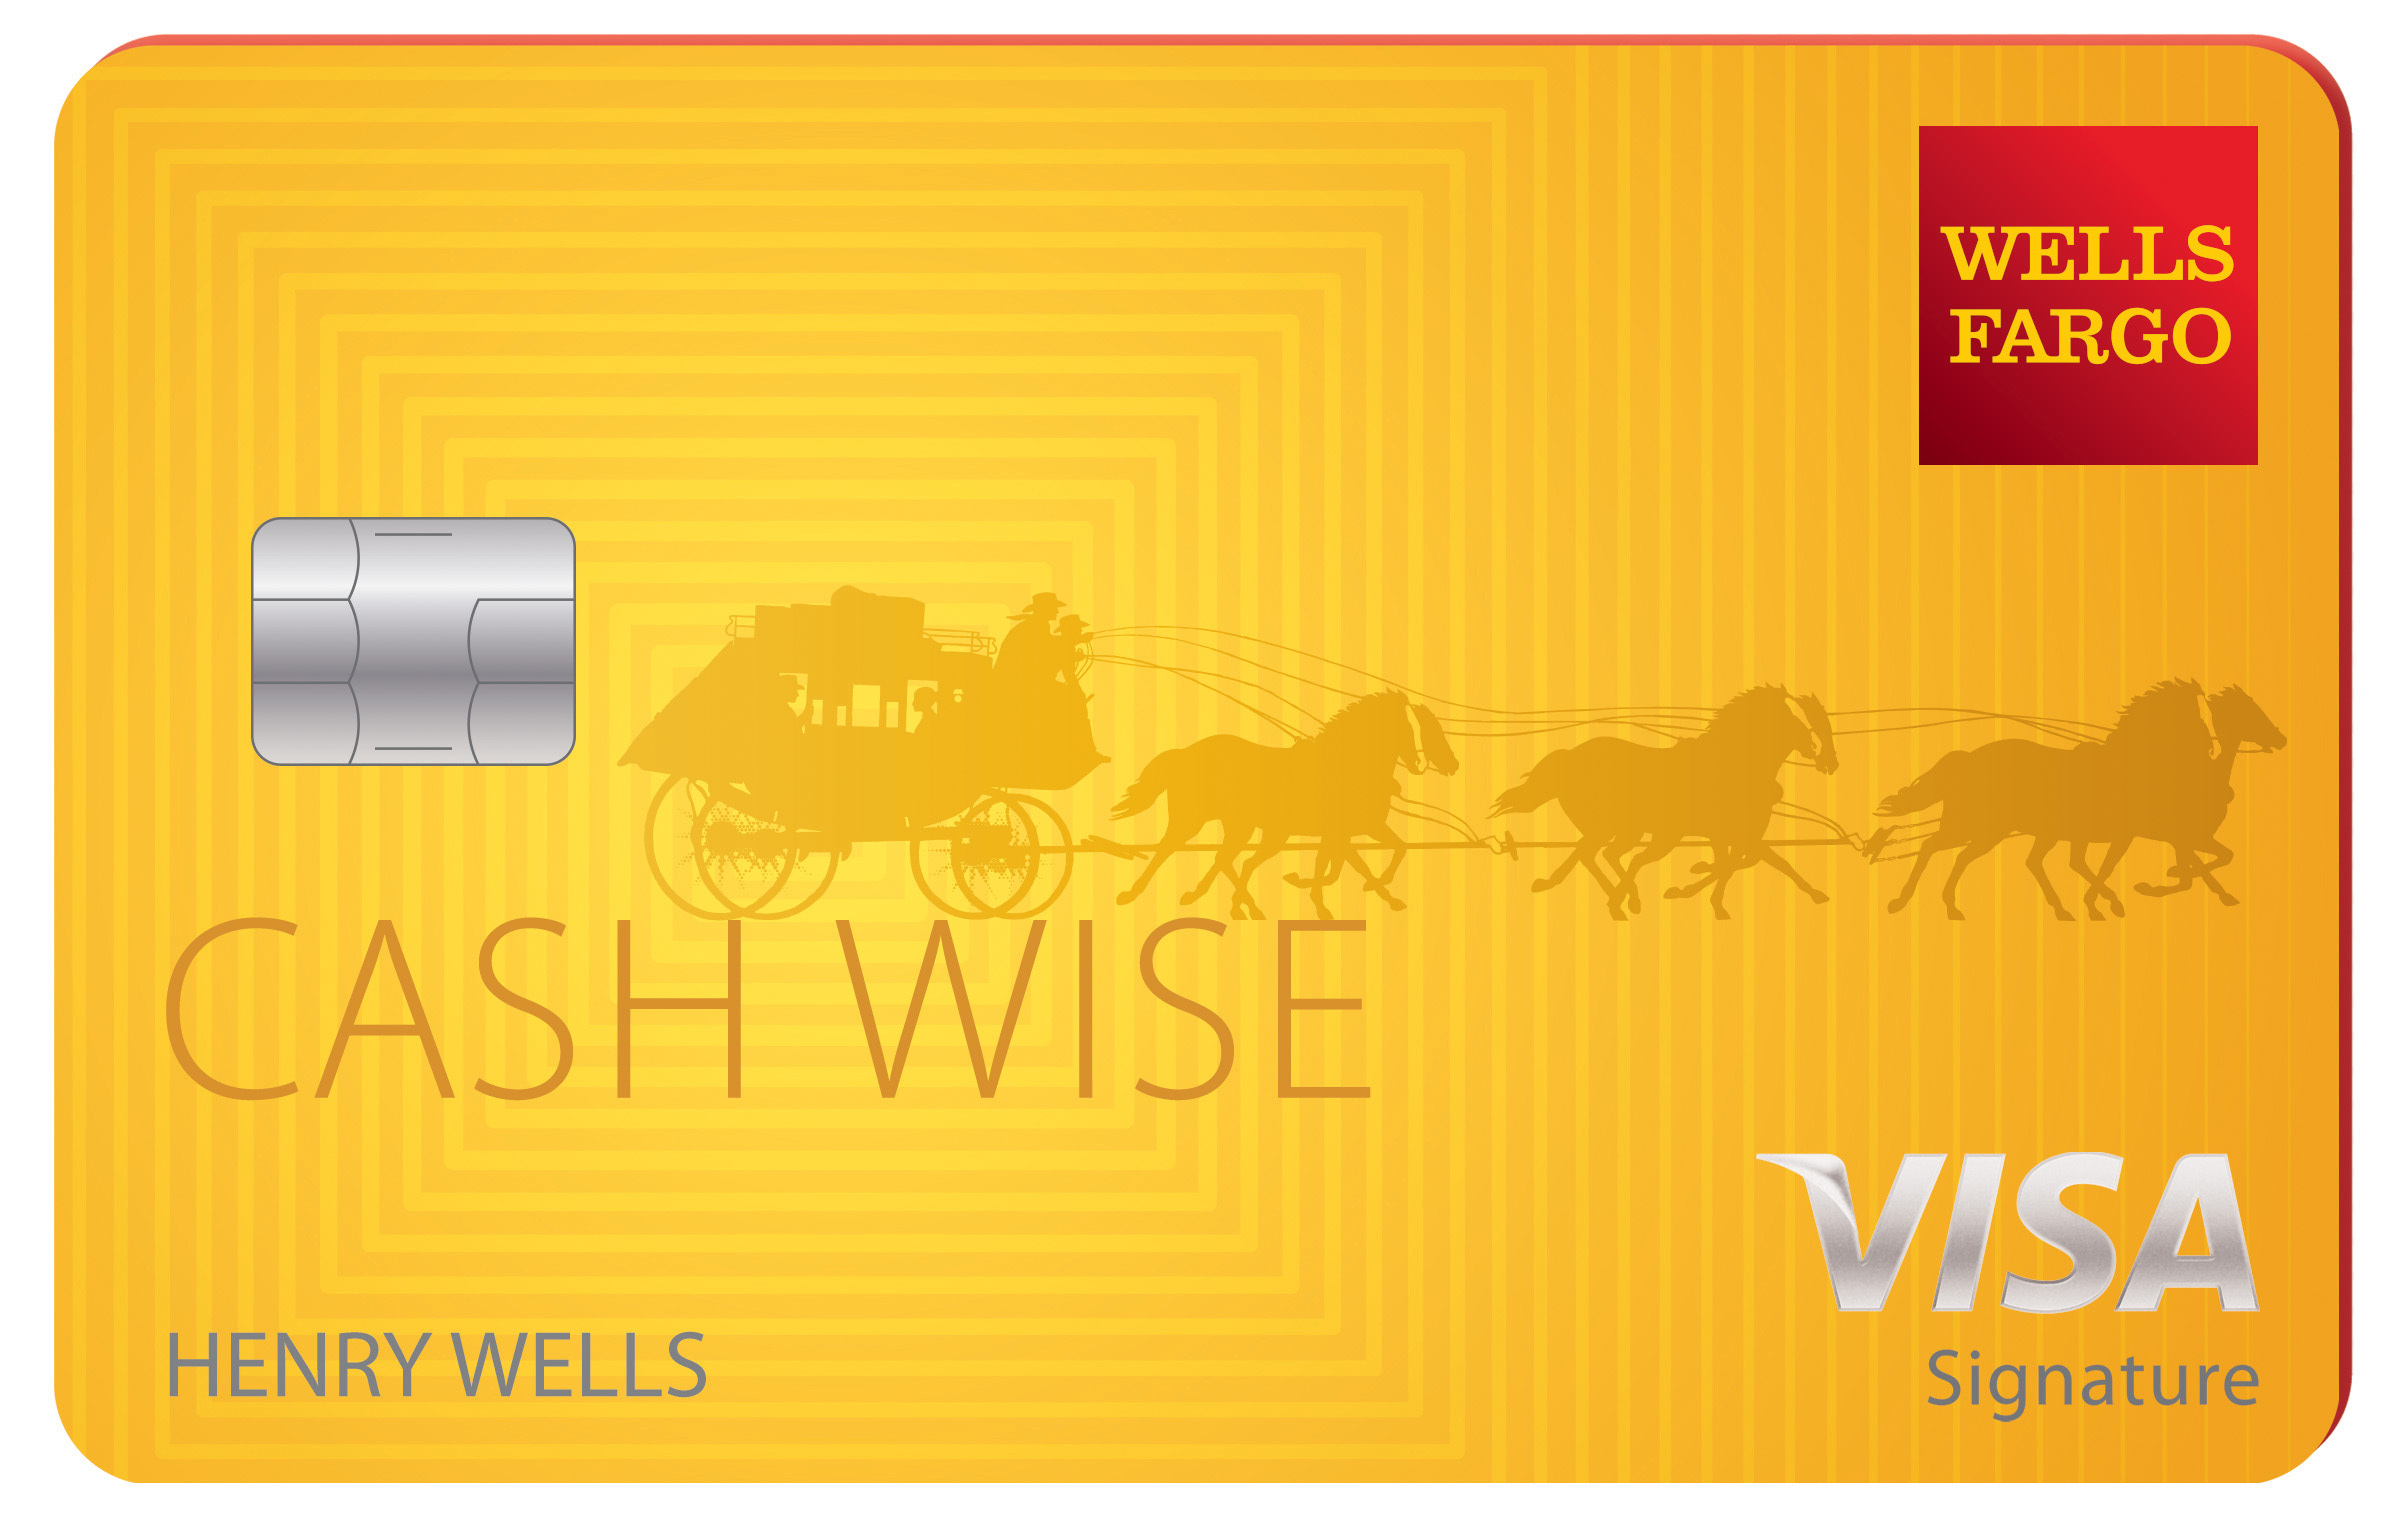 Customers earn more cash rewards with wells fargos cash wise visa full size magicingreecefo Image collections